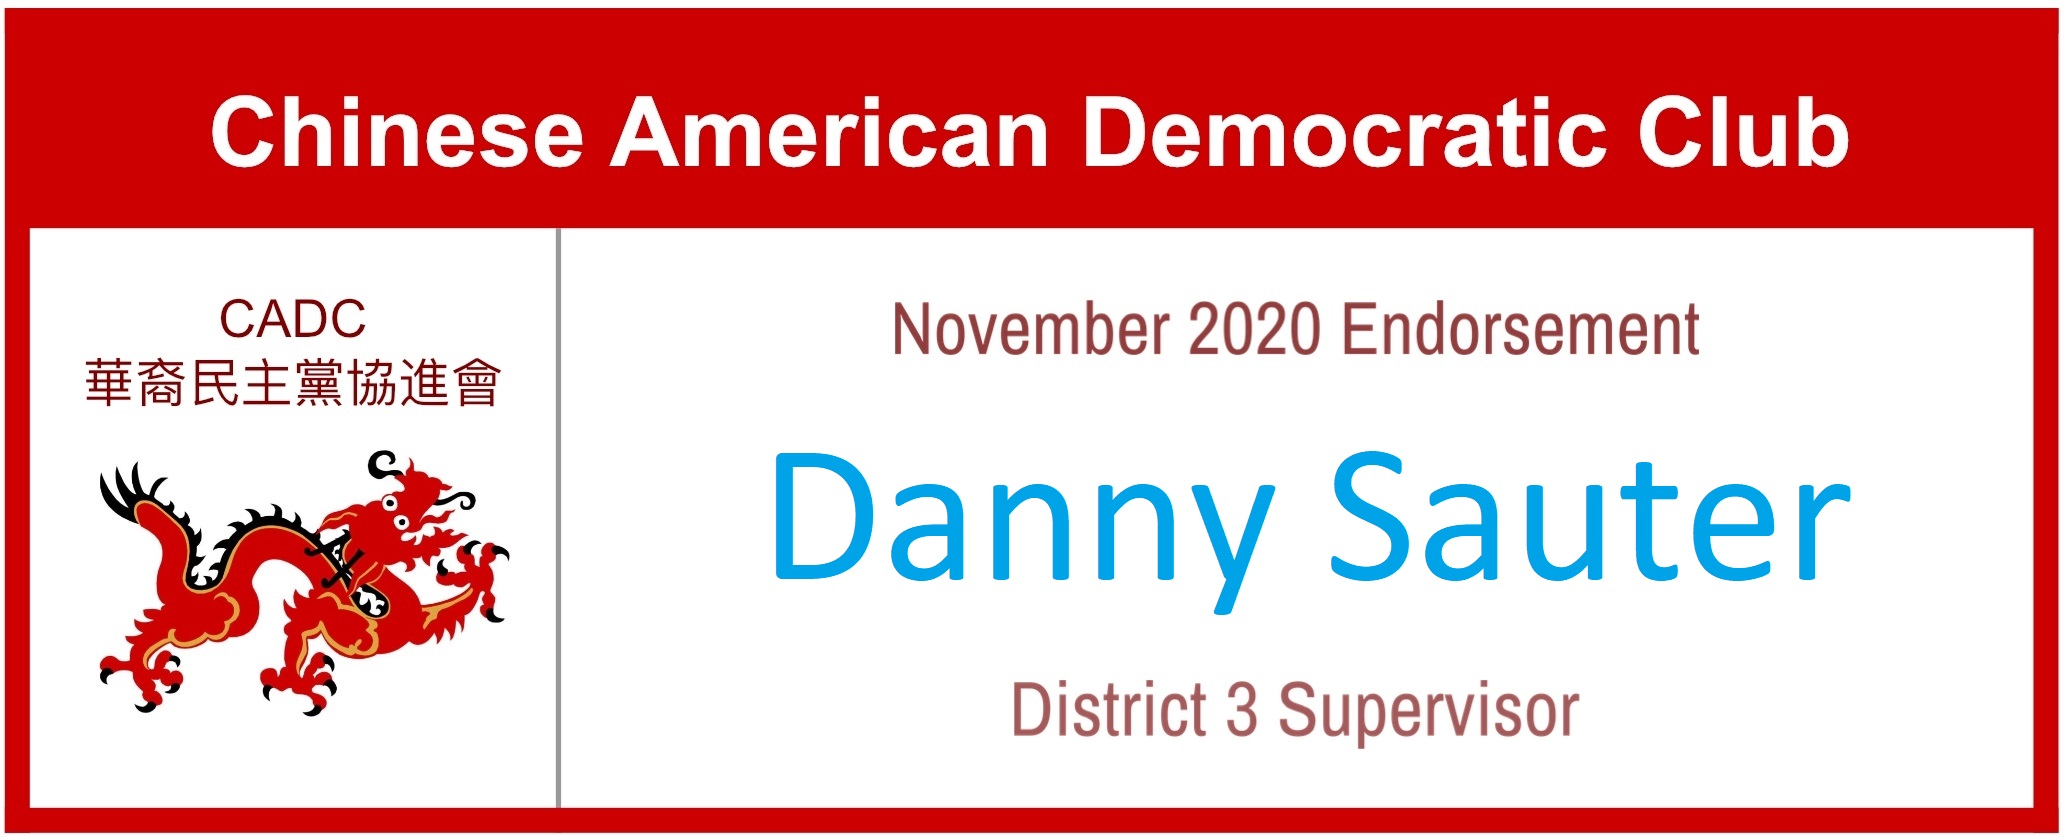 Danny Sauter for District 3 Supervisor - CADC Sole Endorsement November 2020